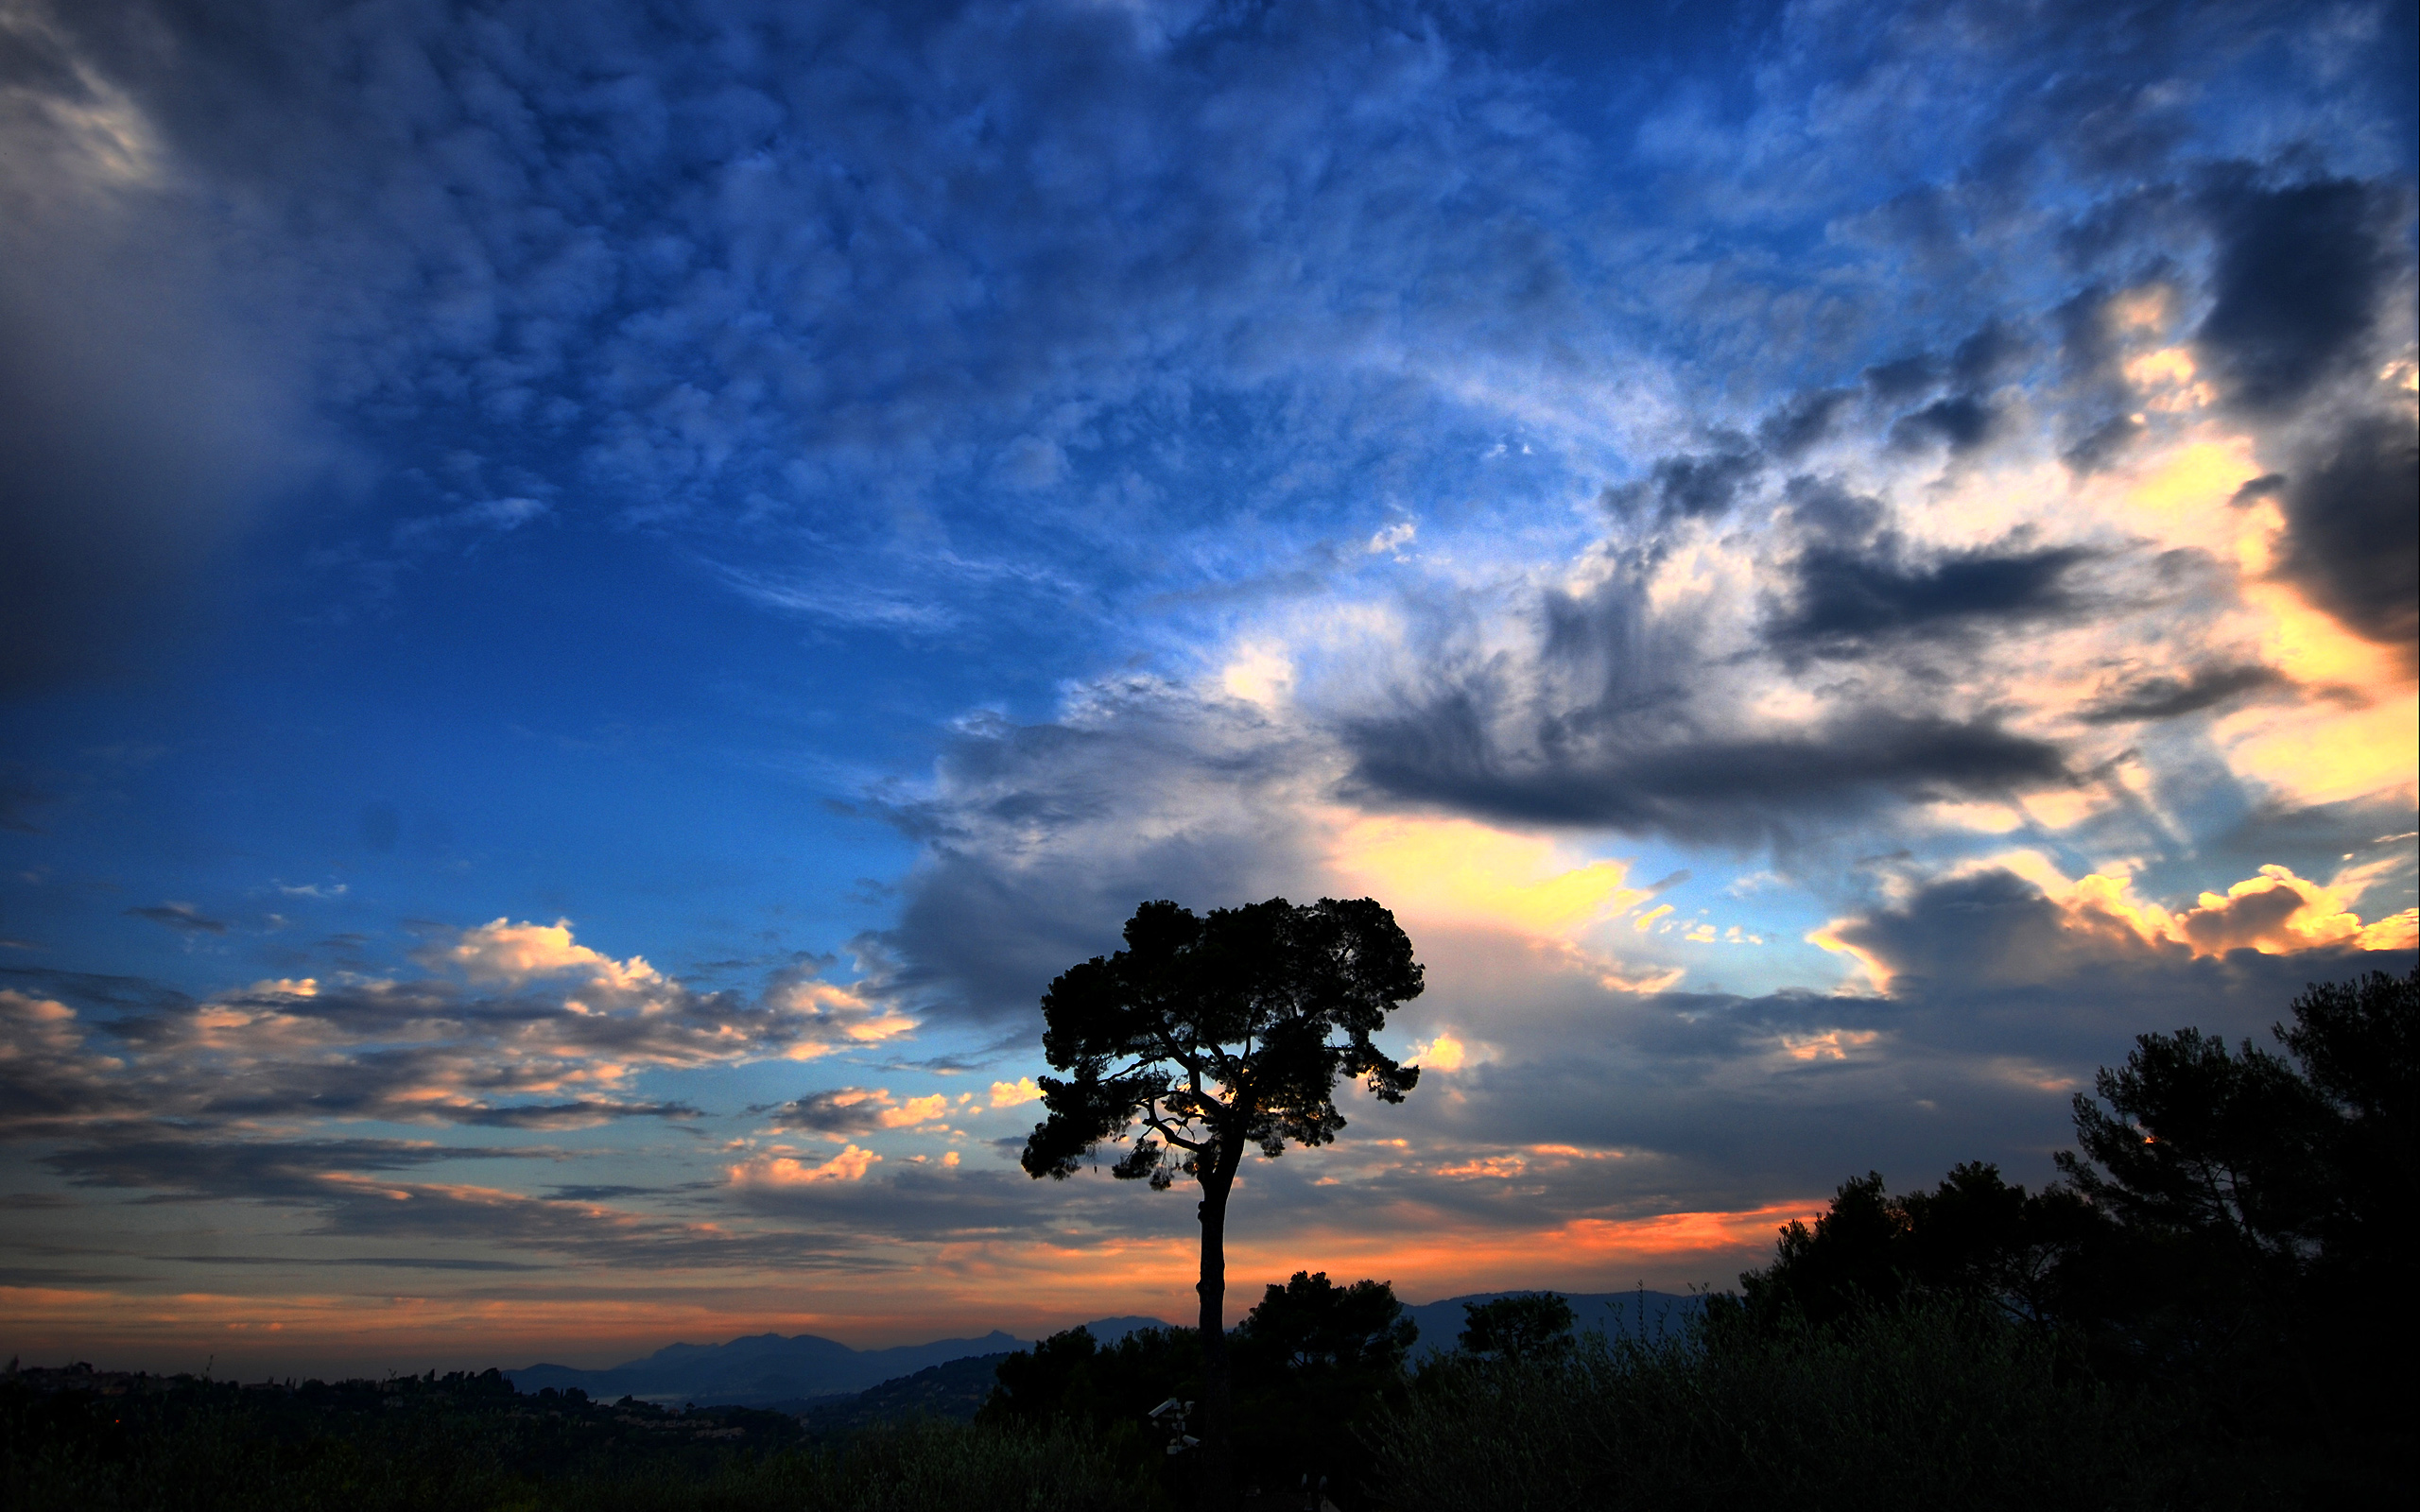 HD Wallpapers Dramatic sky